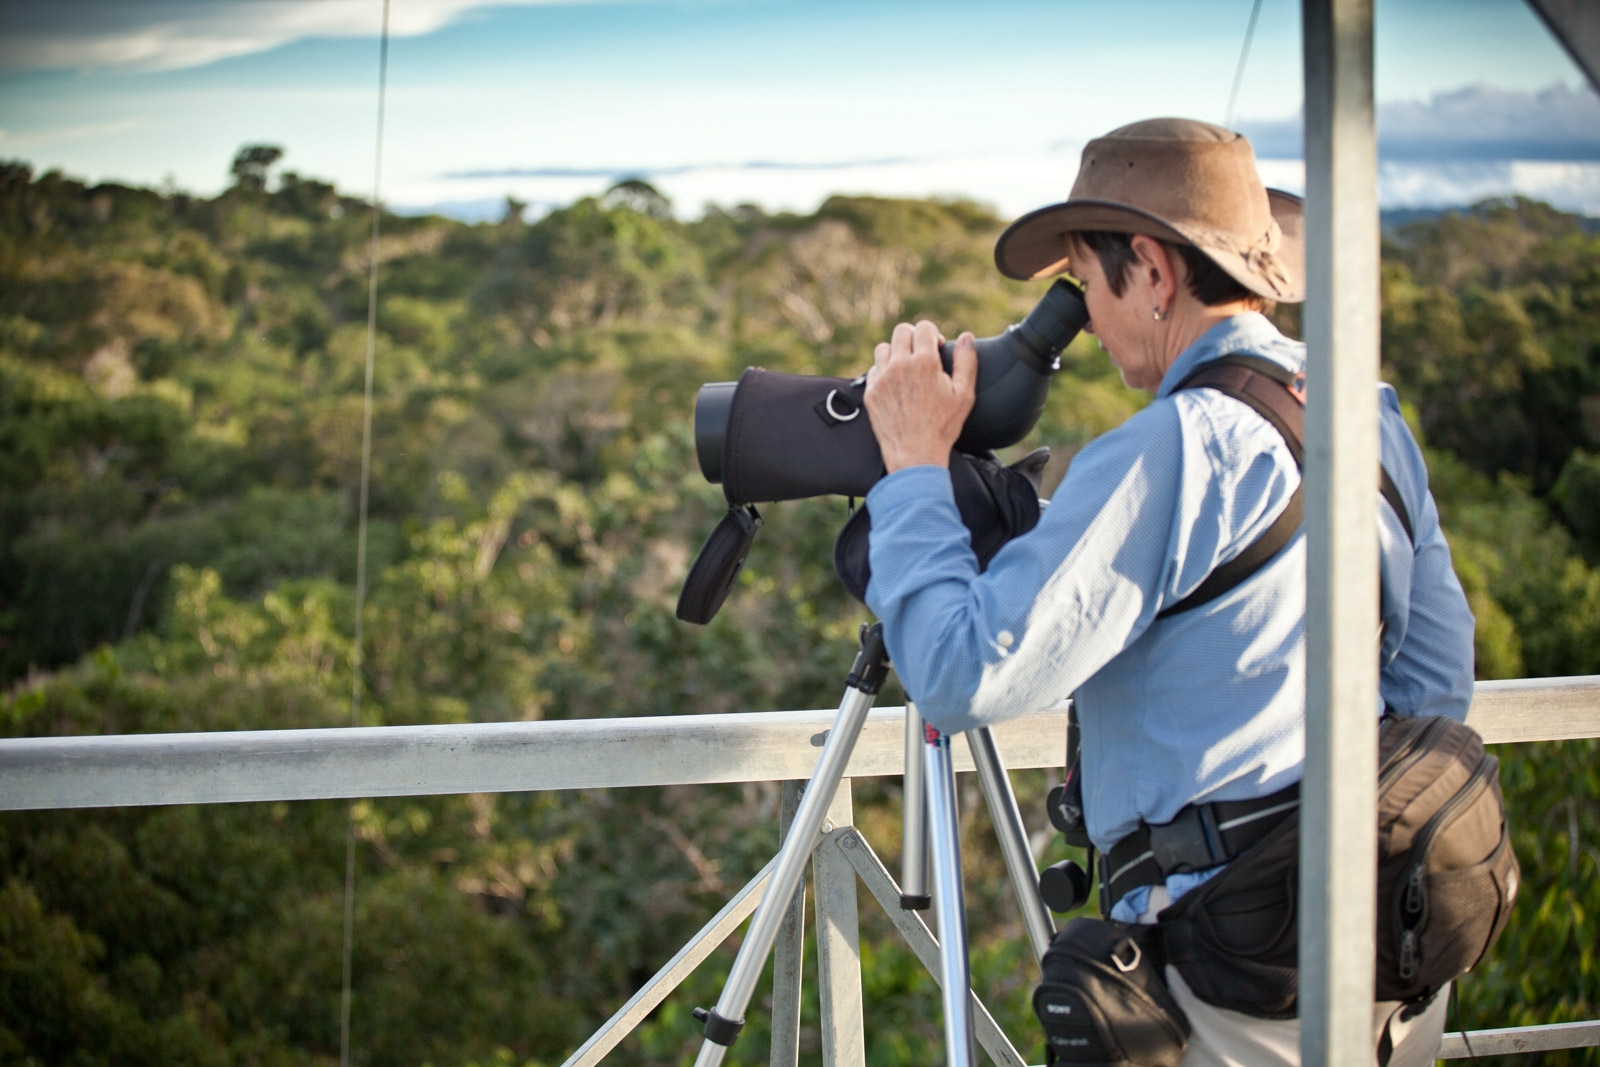 CL-Tourist watching wildlife at canopy tower-Samuel Melim.jpg